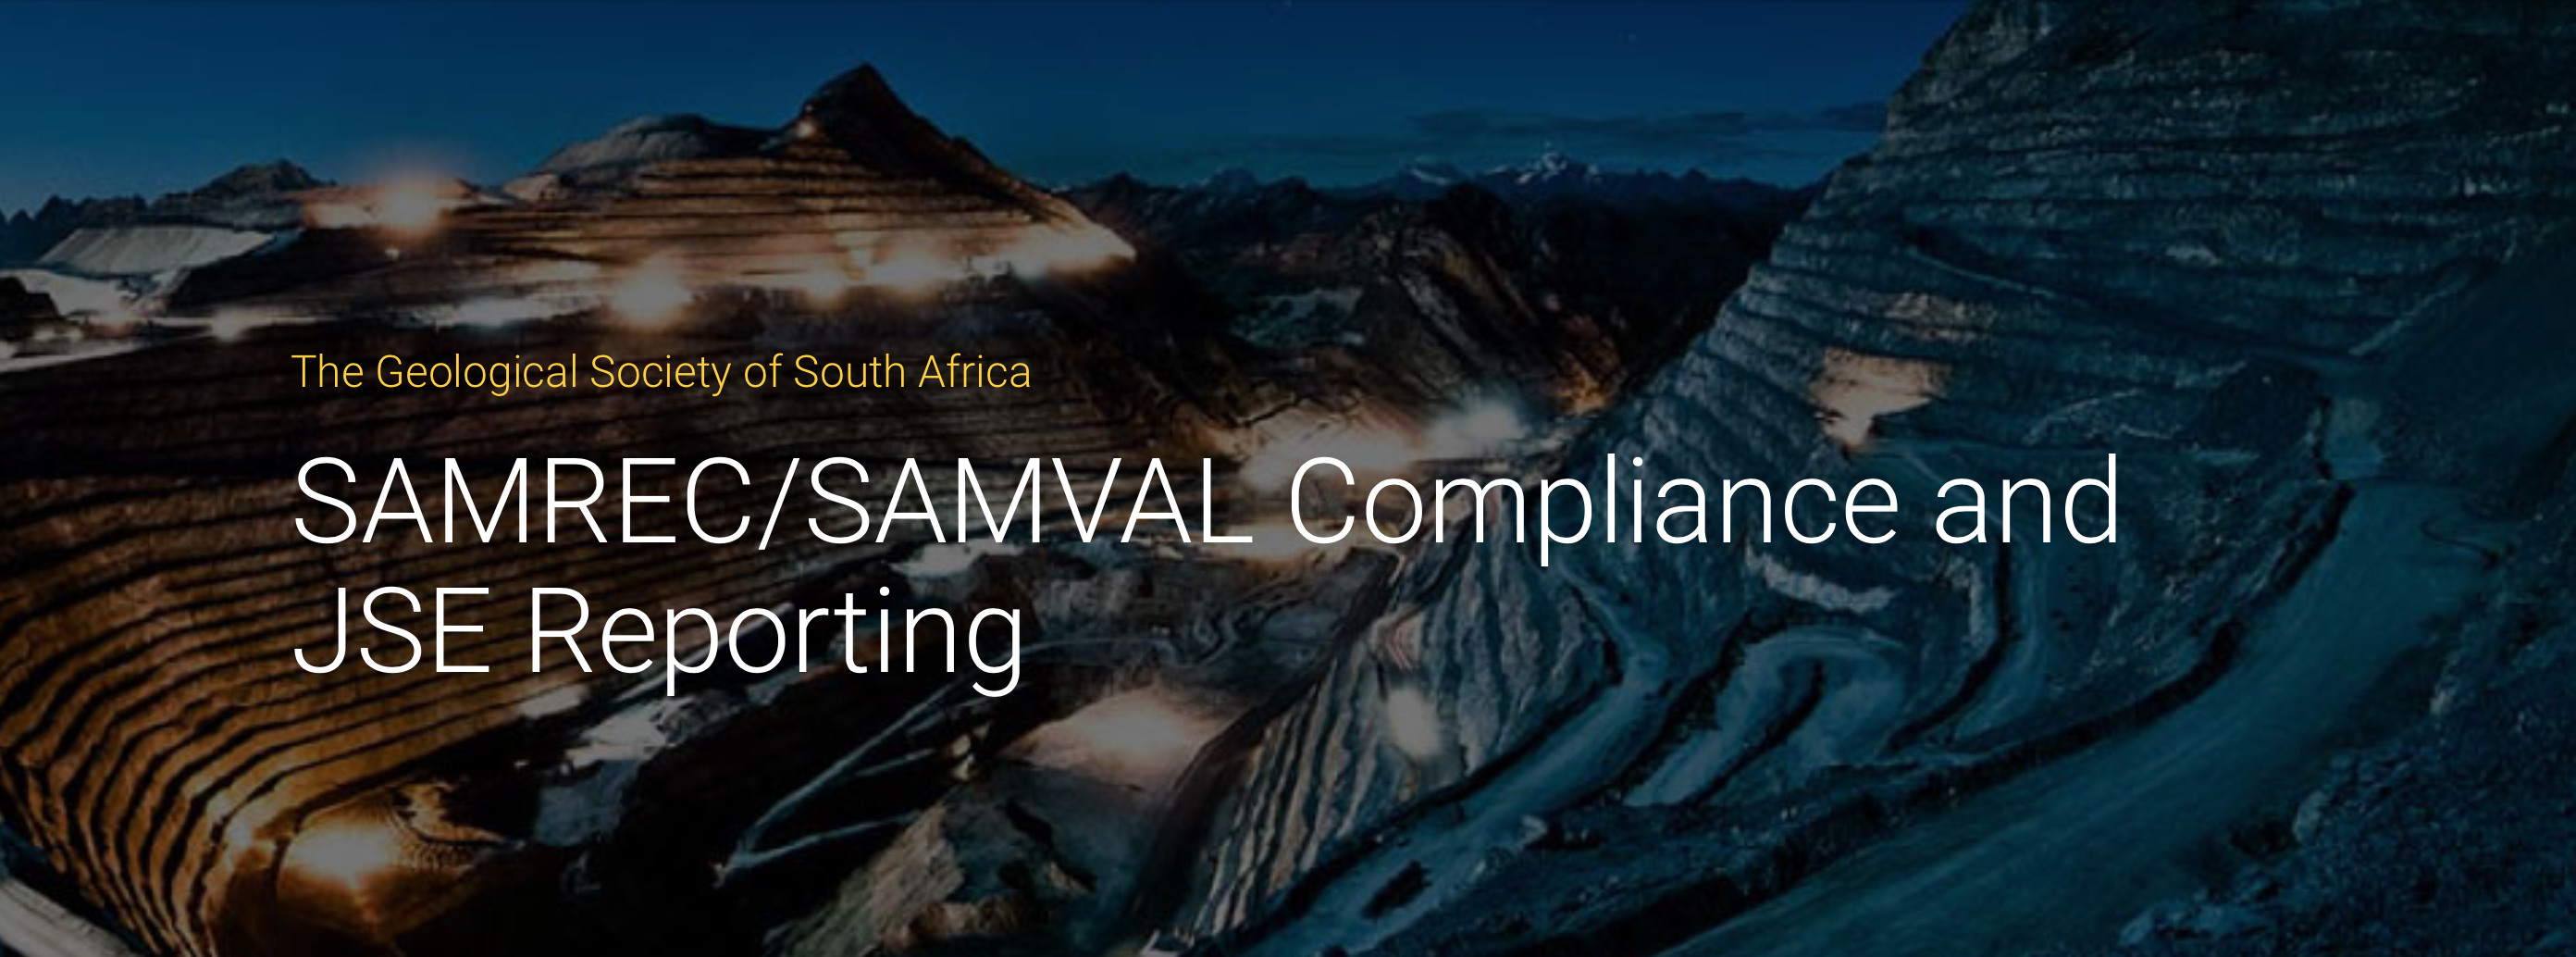 The 4th Annual SAMREC/SAMVAL Compliance and JSE Reporting Workshop